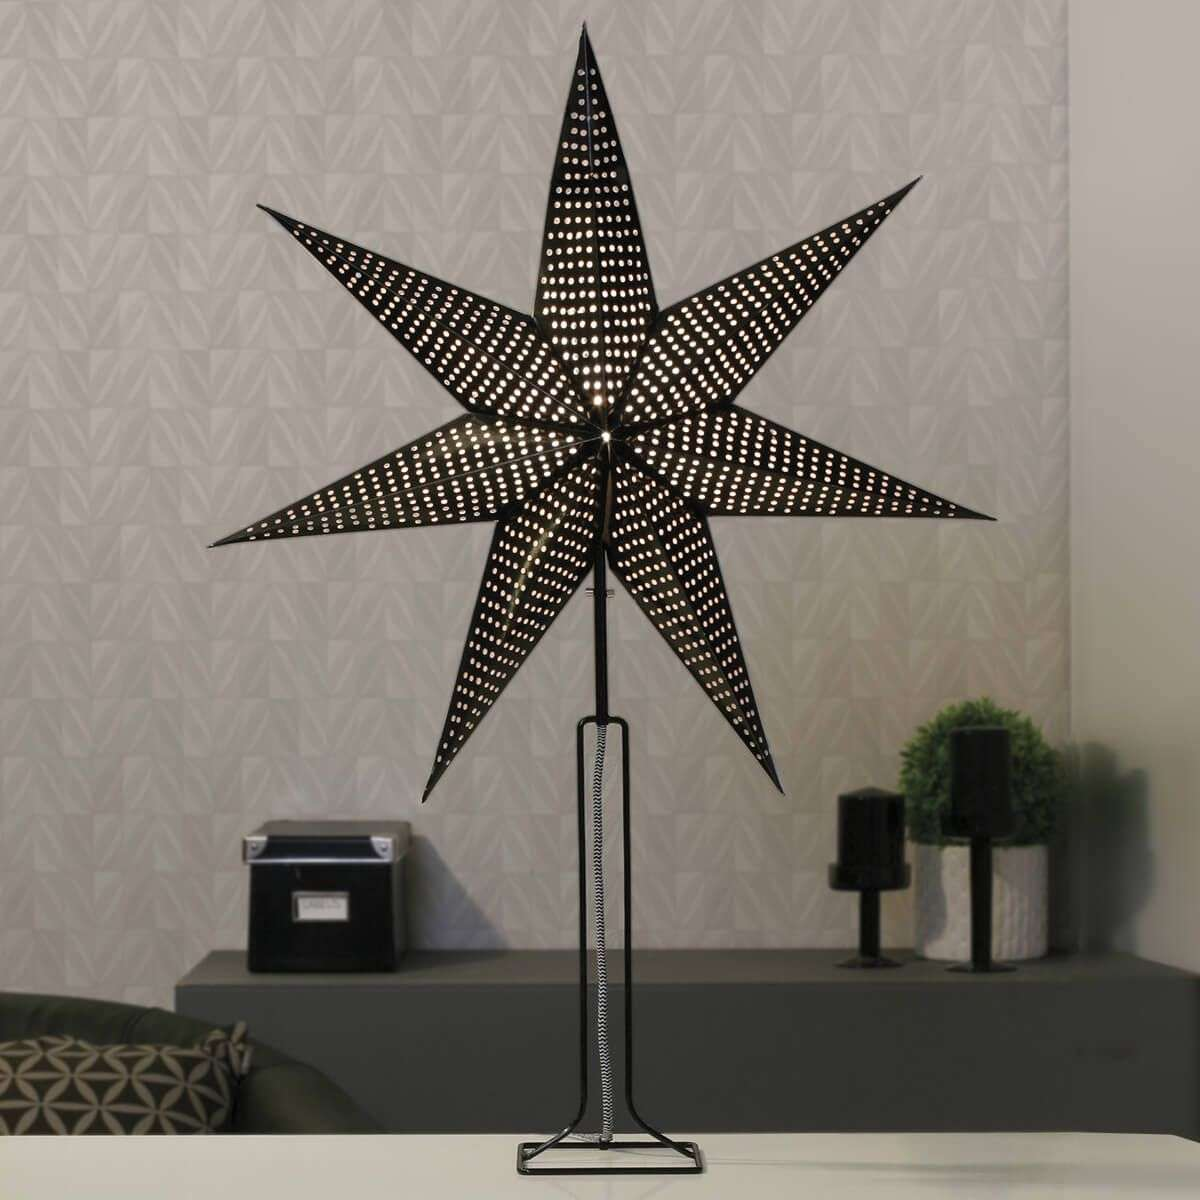 In black paper star Huss with metal base 85 cm-1523261-31